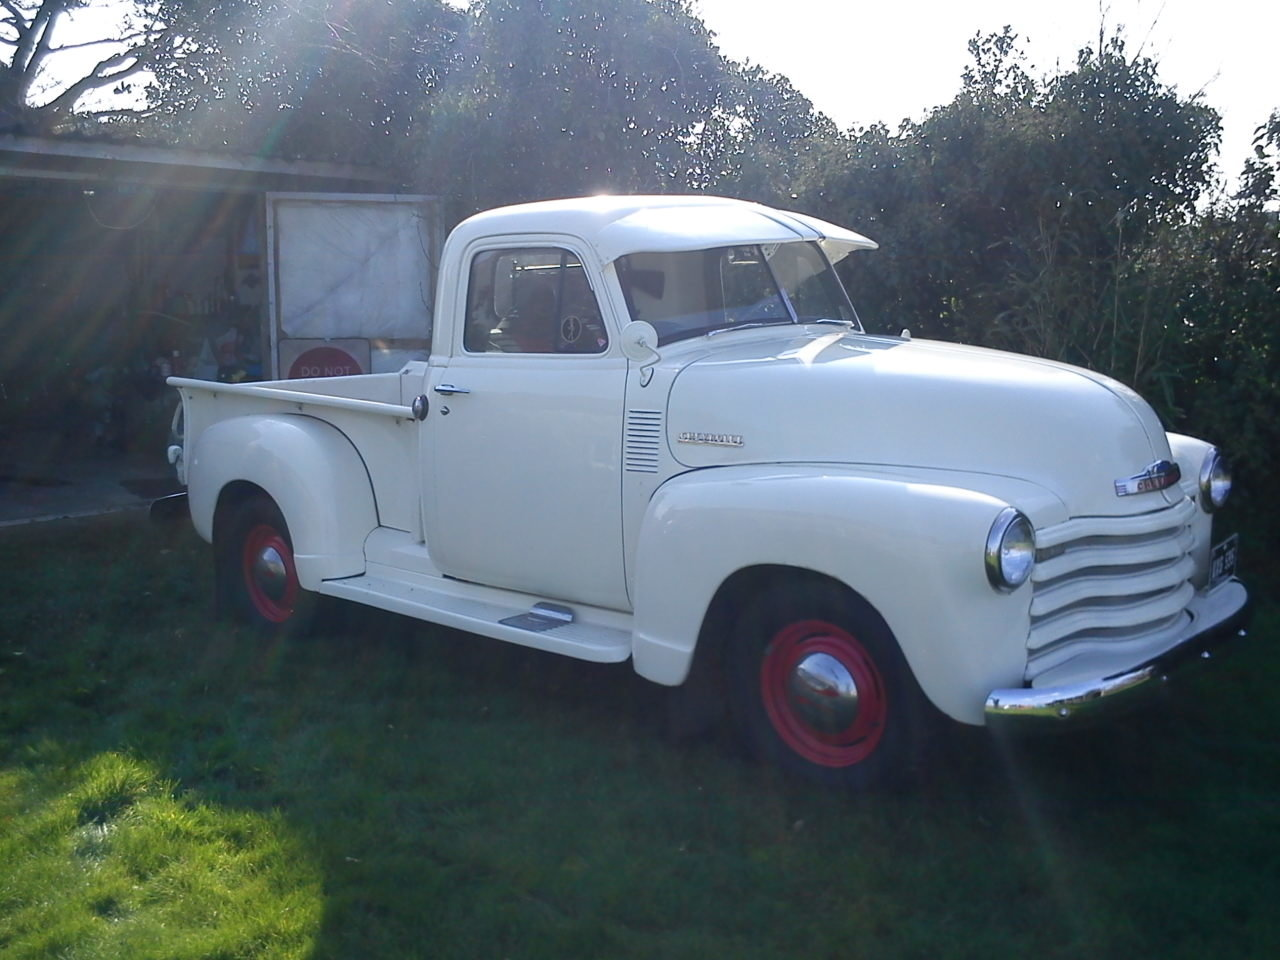 1951 Chevrolet step-side pick up For Sale (picture 1 of 6)